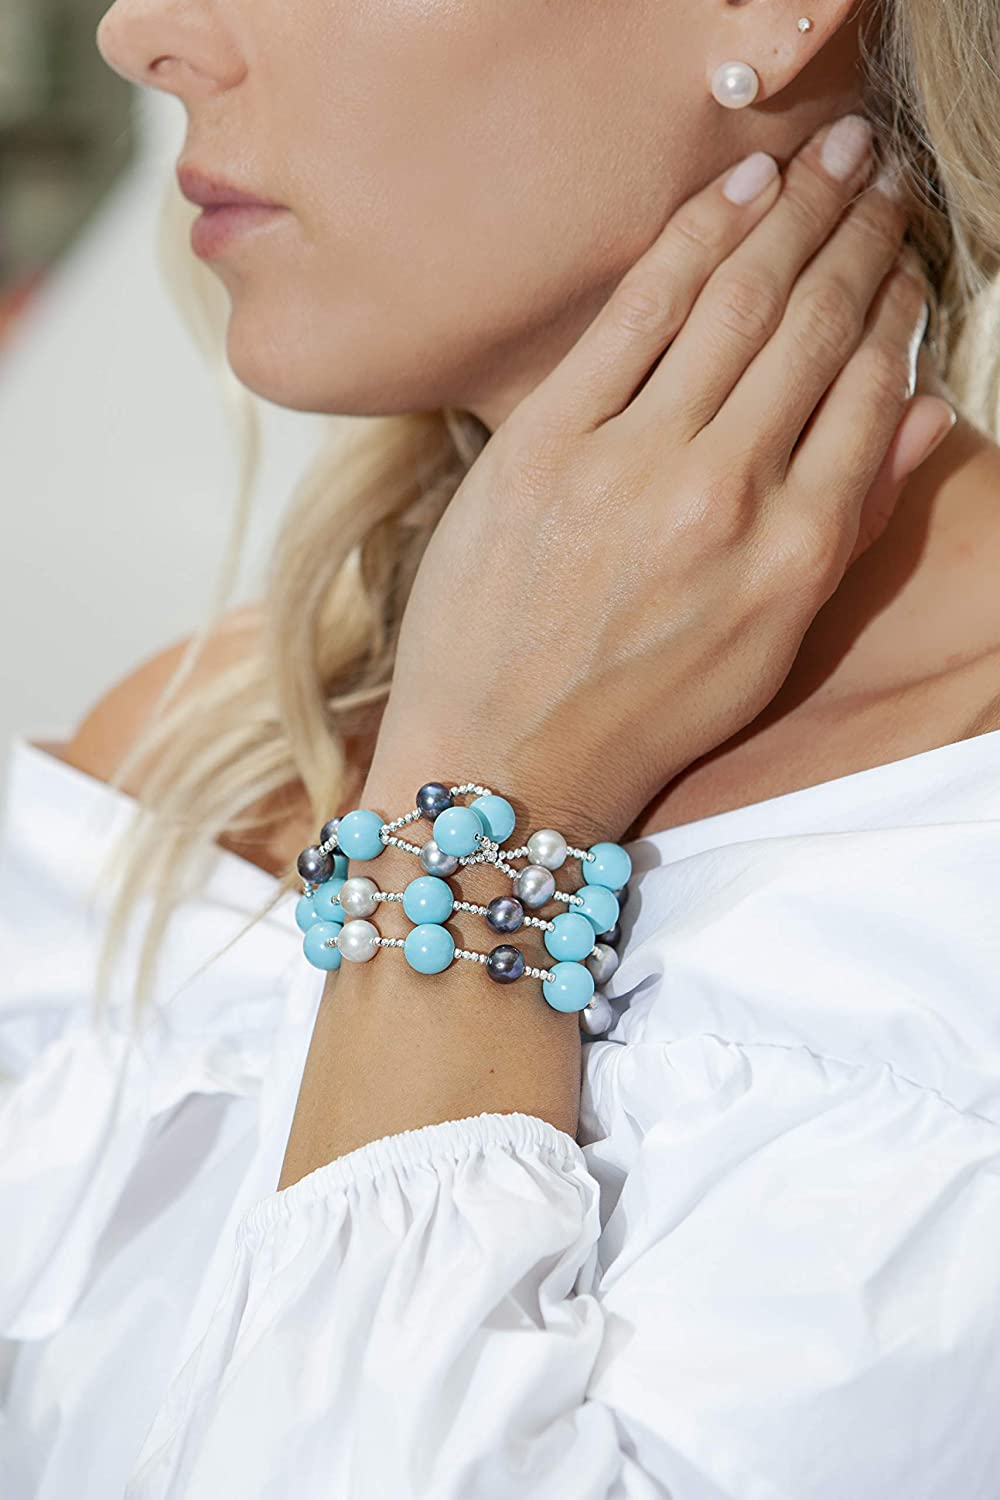 Kaufmann De Suisse Freshwater Black and Grey Pearl Wrap Bracelet with Turquoise 24005